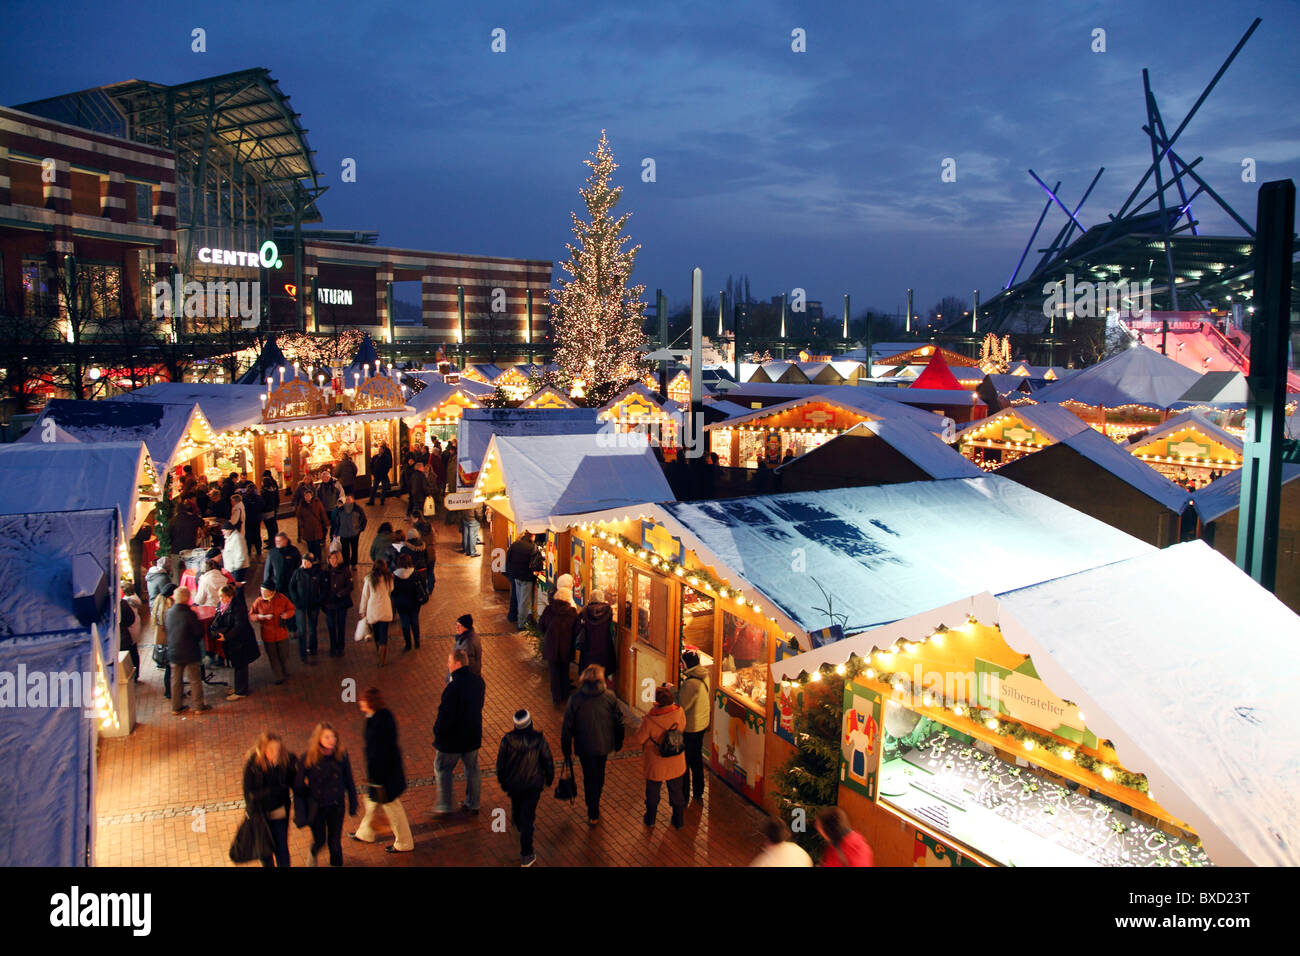 Centro Weihnachtsmarkt.Traditional Christmas Market With Many Decorated Booths At Centro